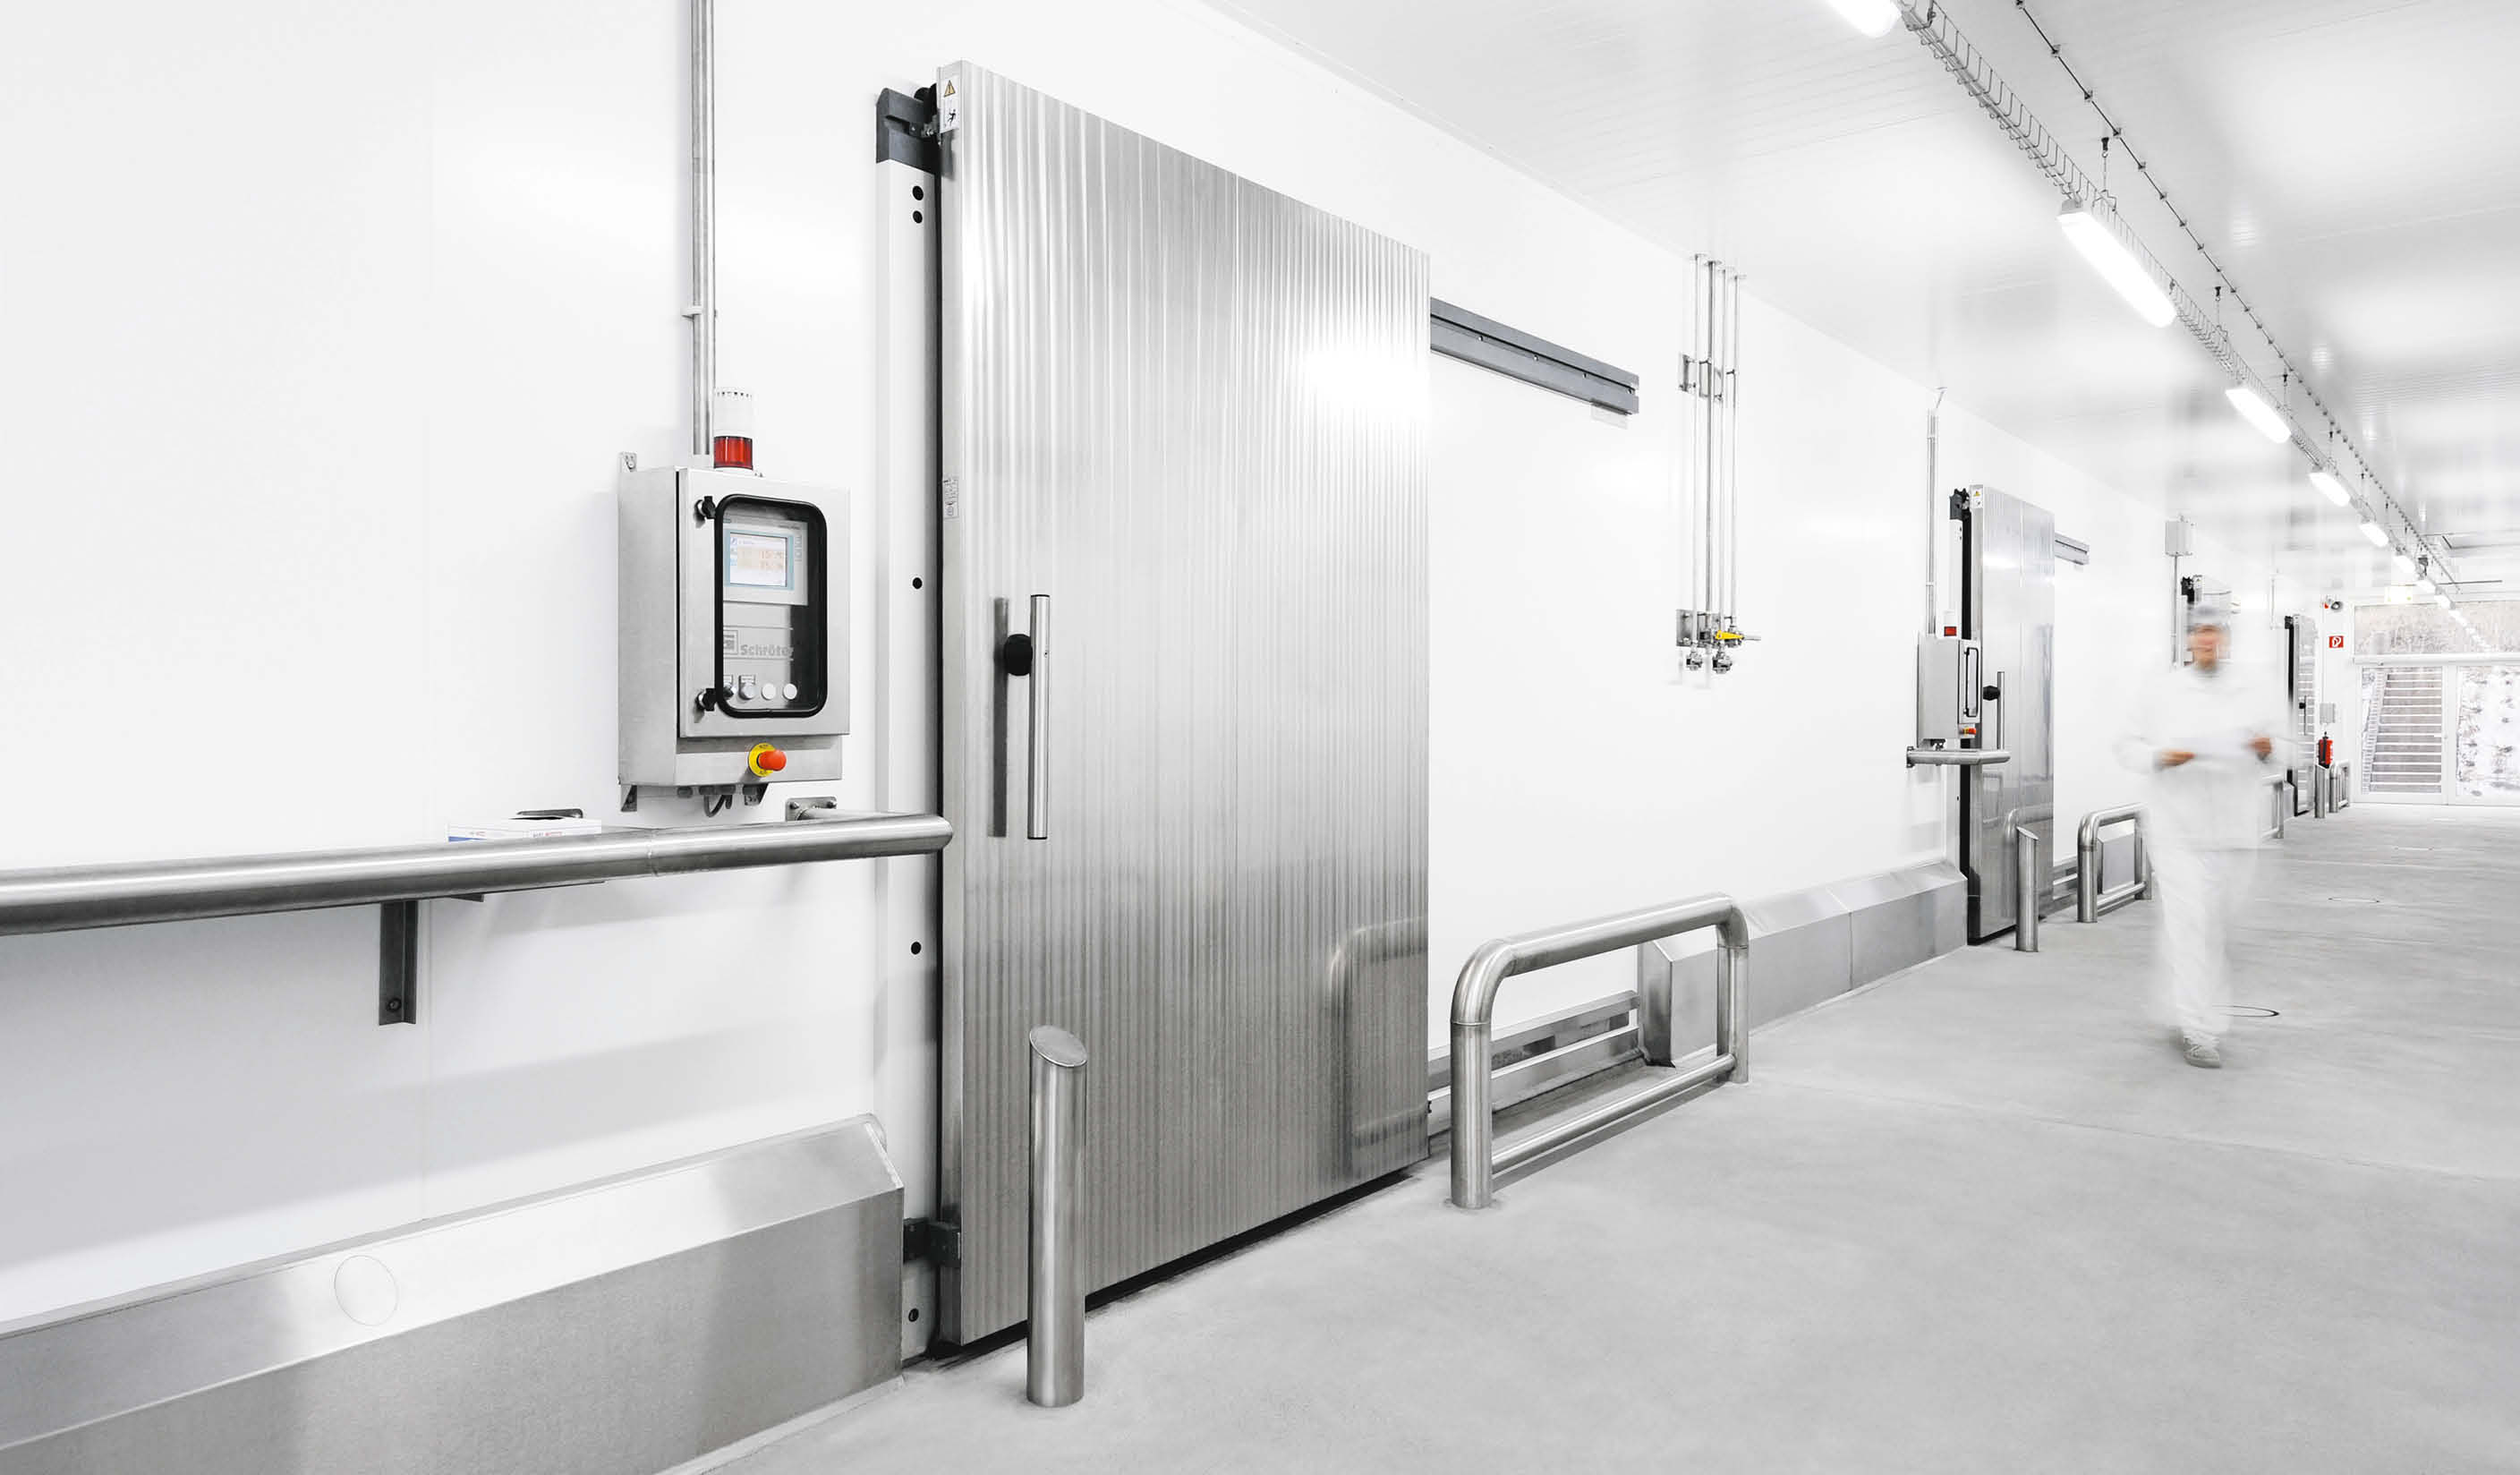 CI8 Sliding door for chillers with manual operation